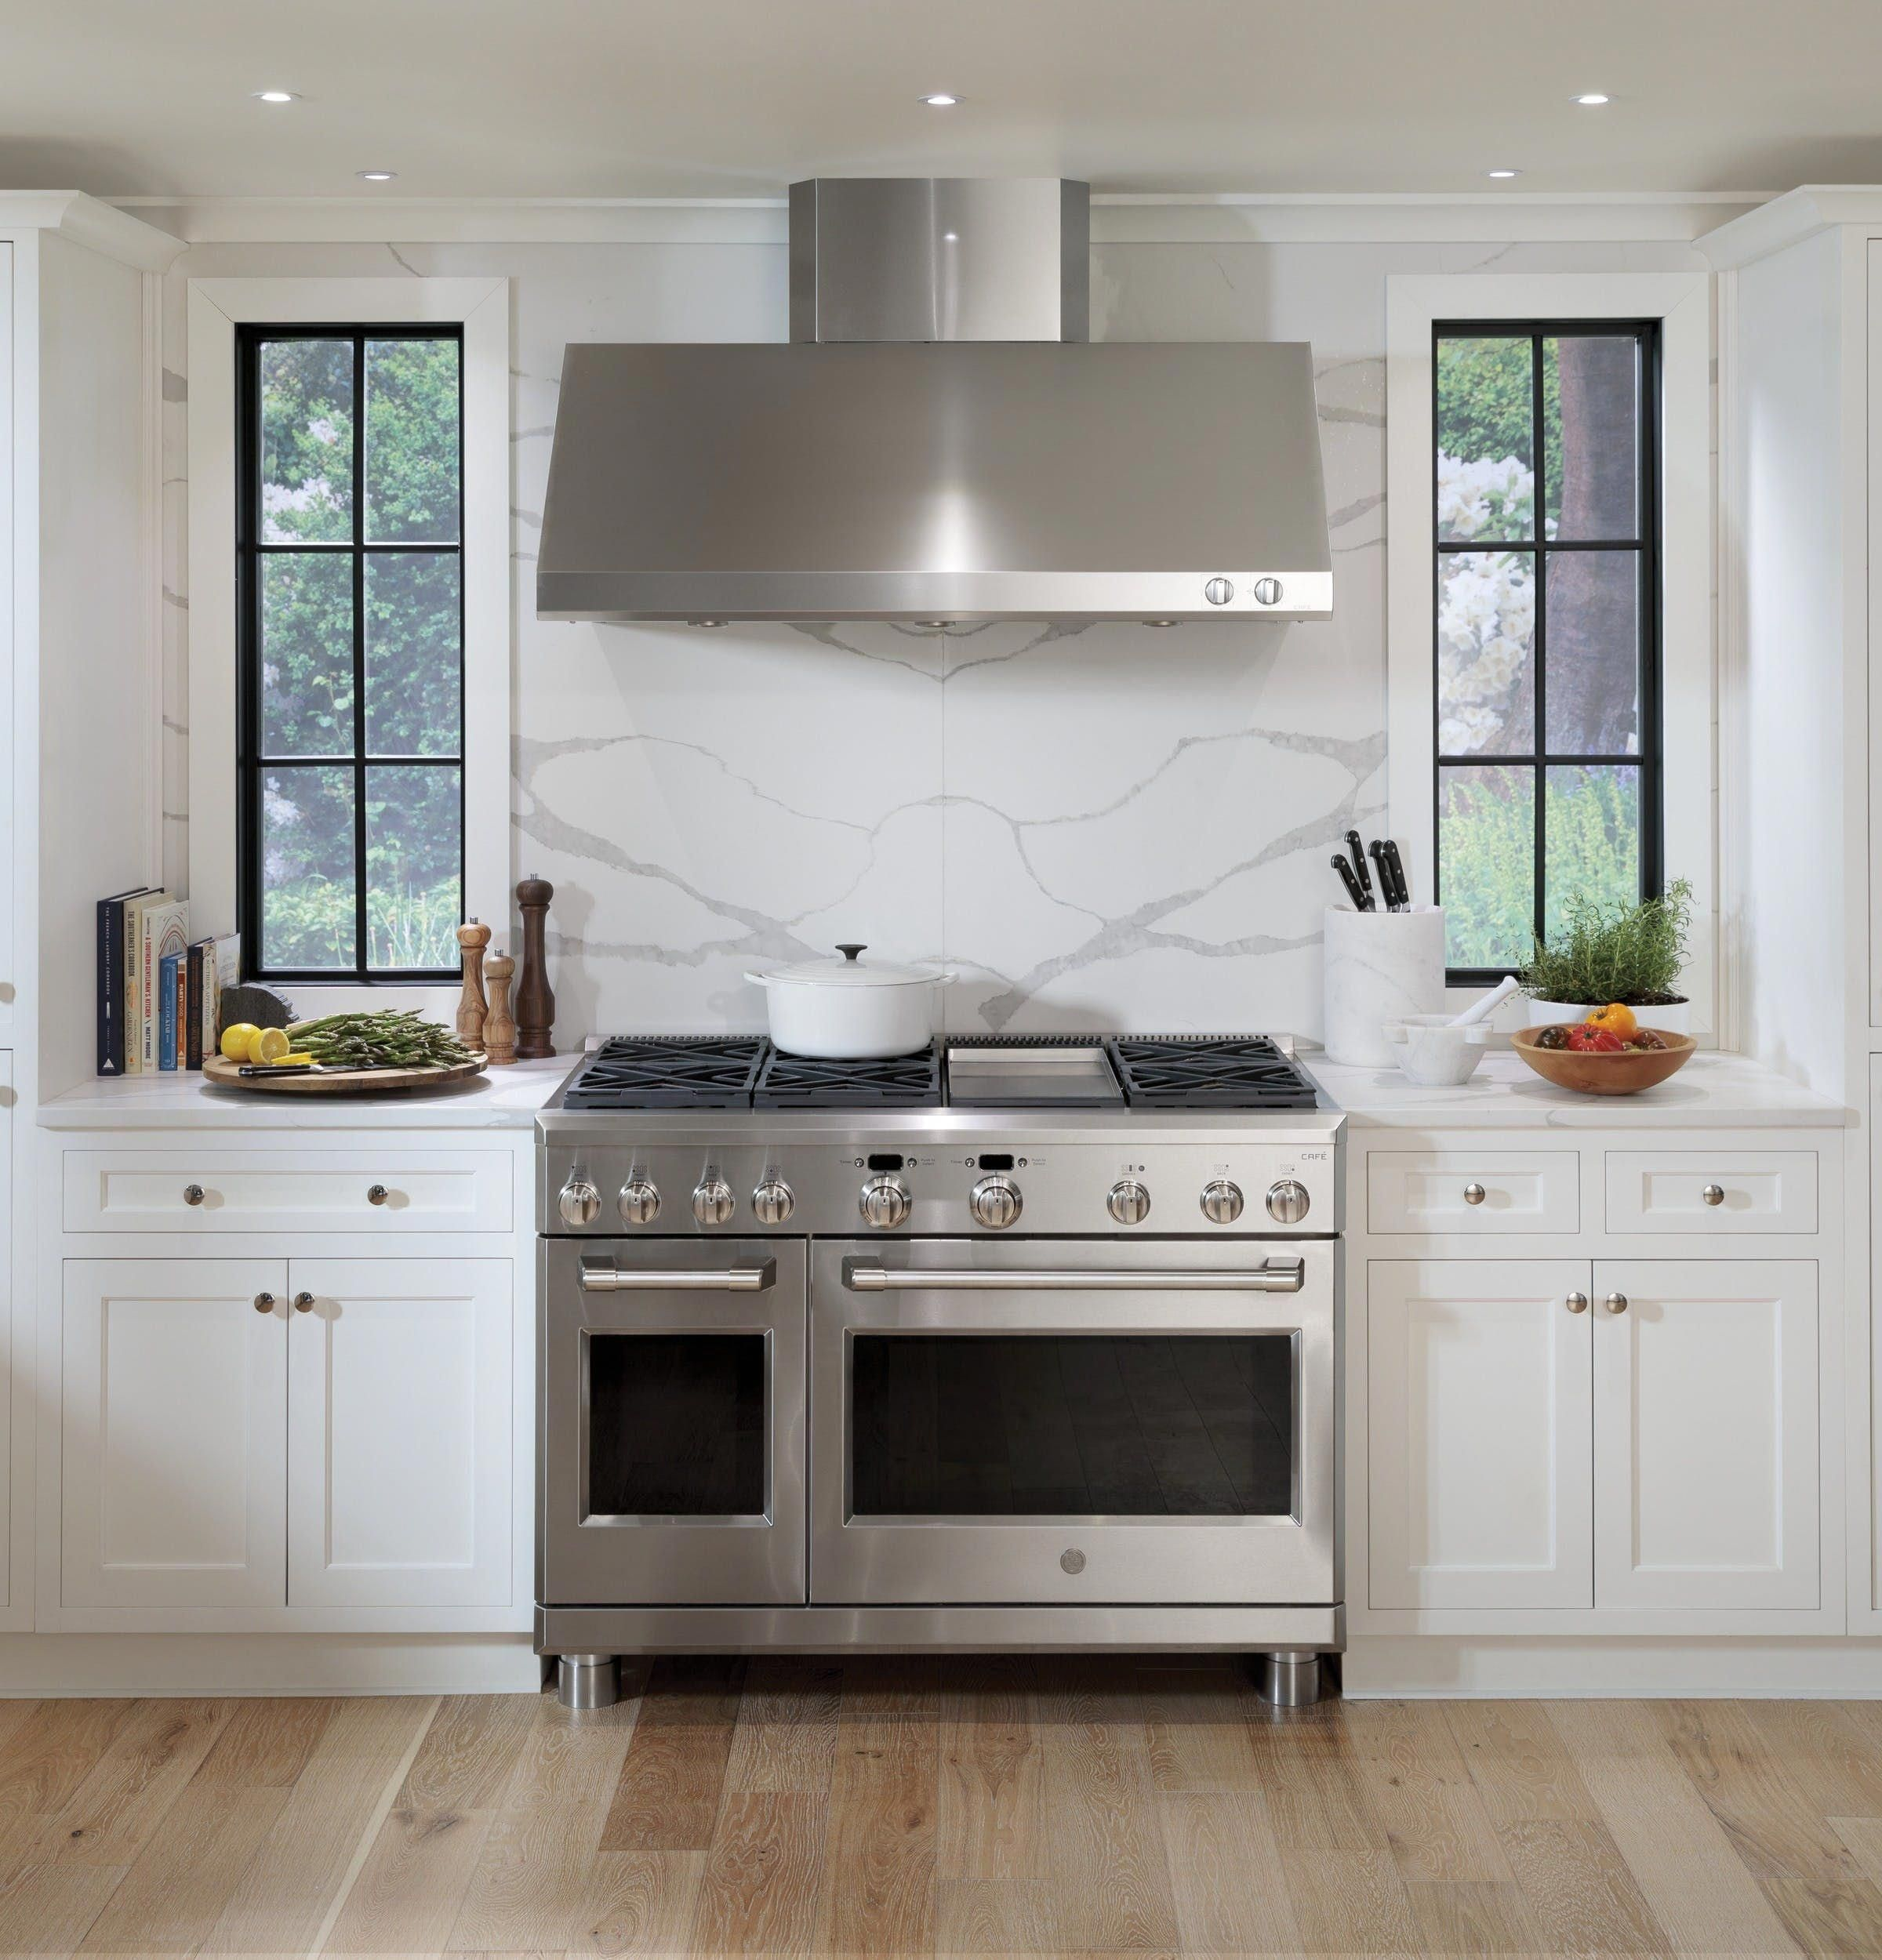 Bar Stools Can Be Found In A Variety Of Sizes With Or Without The Back With The Back You Can Choose From Kitchen Vent Hood Stainless Range Hood Kitchen Vent